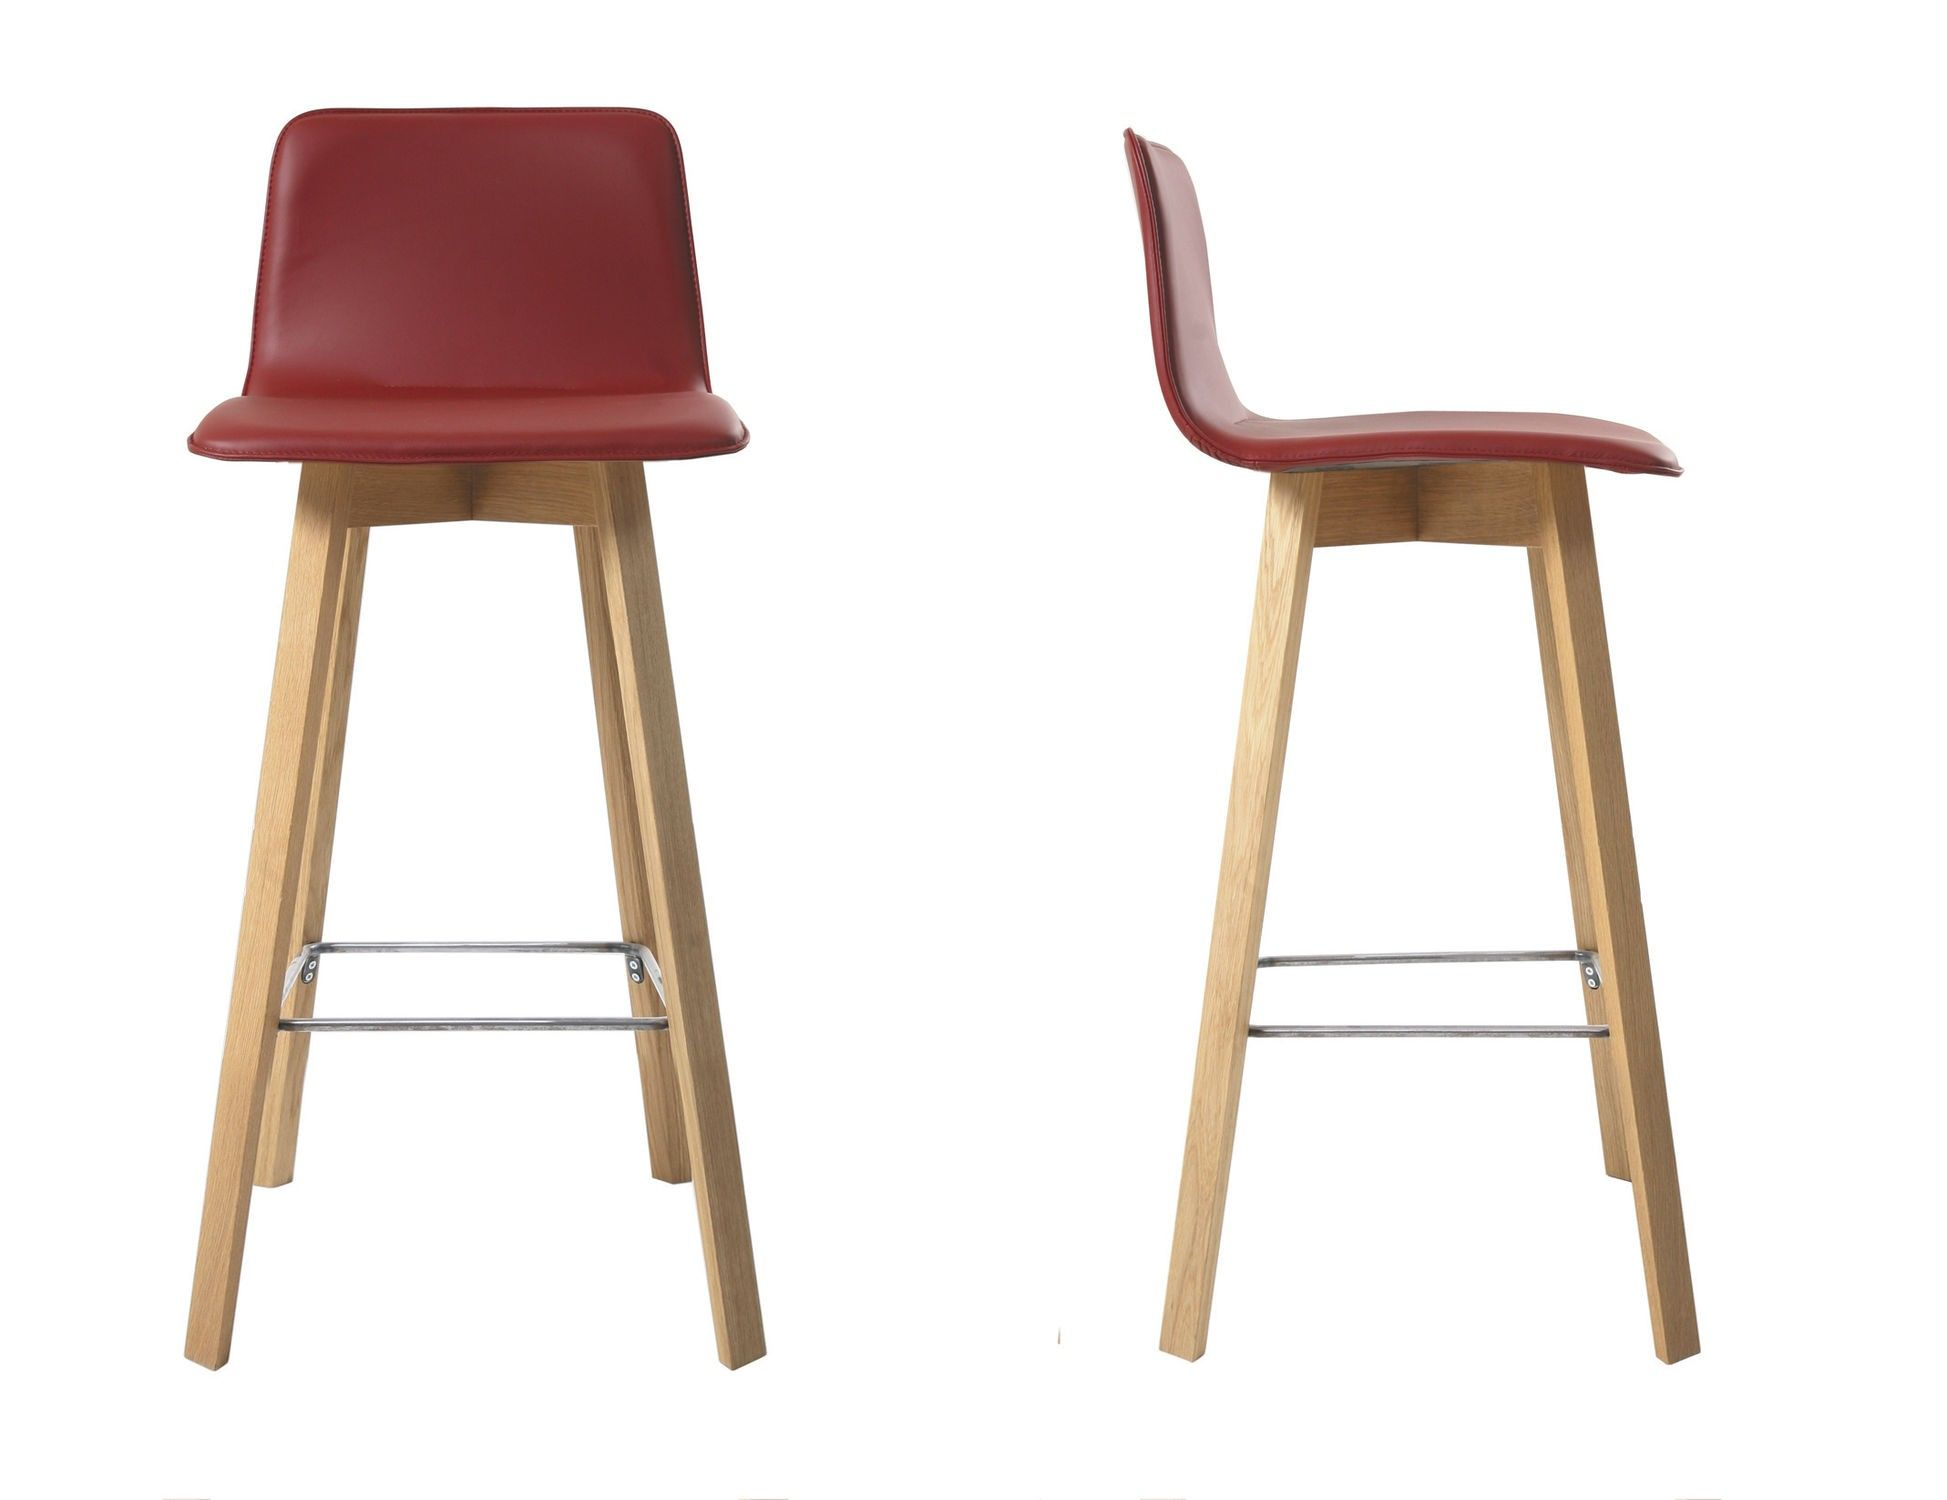 Kitchen stools with backs contemporary wooden upholstered maverick hight red bar stool chair color patio bar